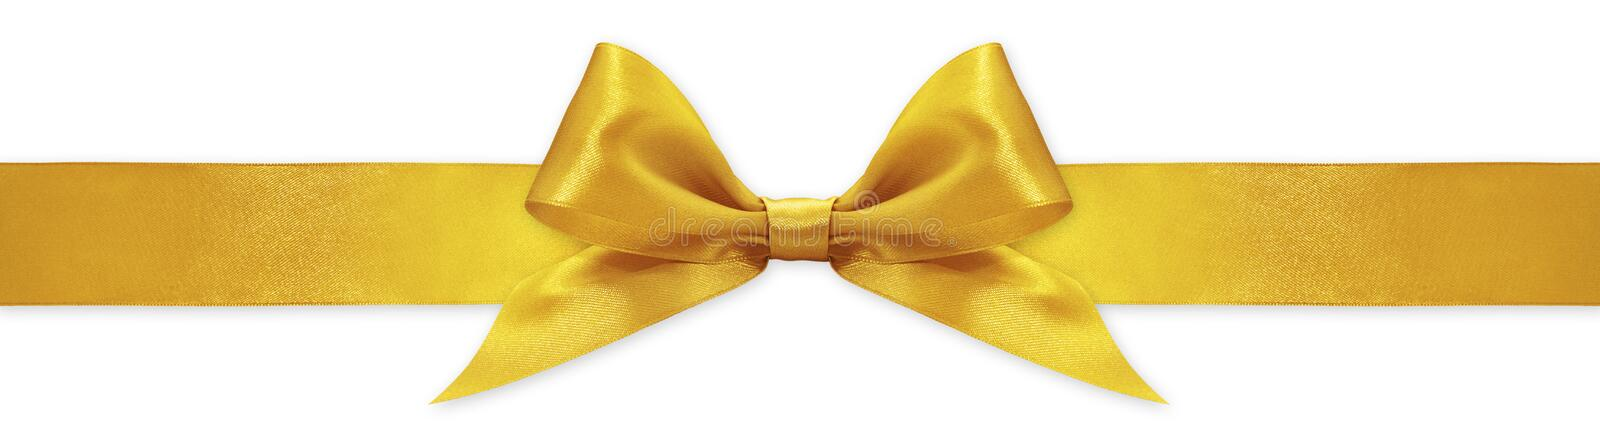 Golden ribbon bow isolated on white background, for event or gift package stock image